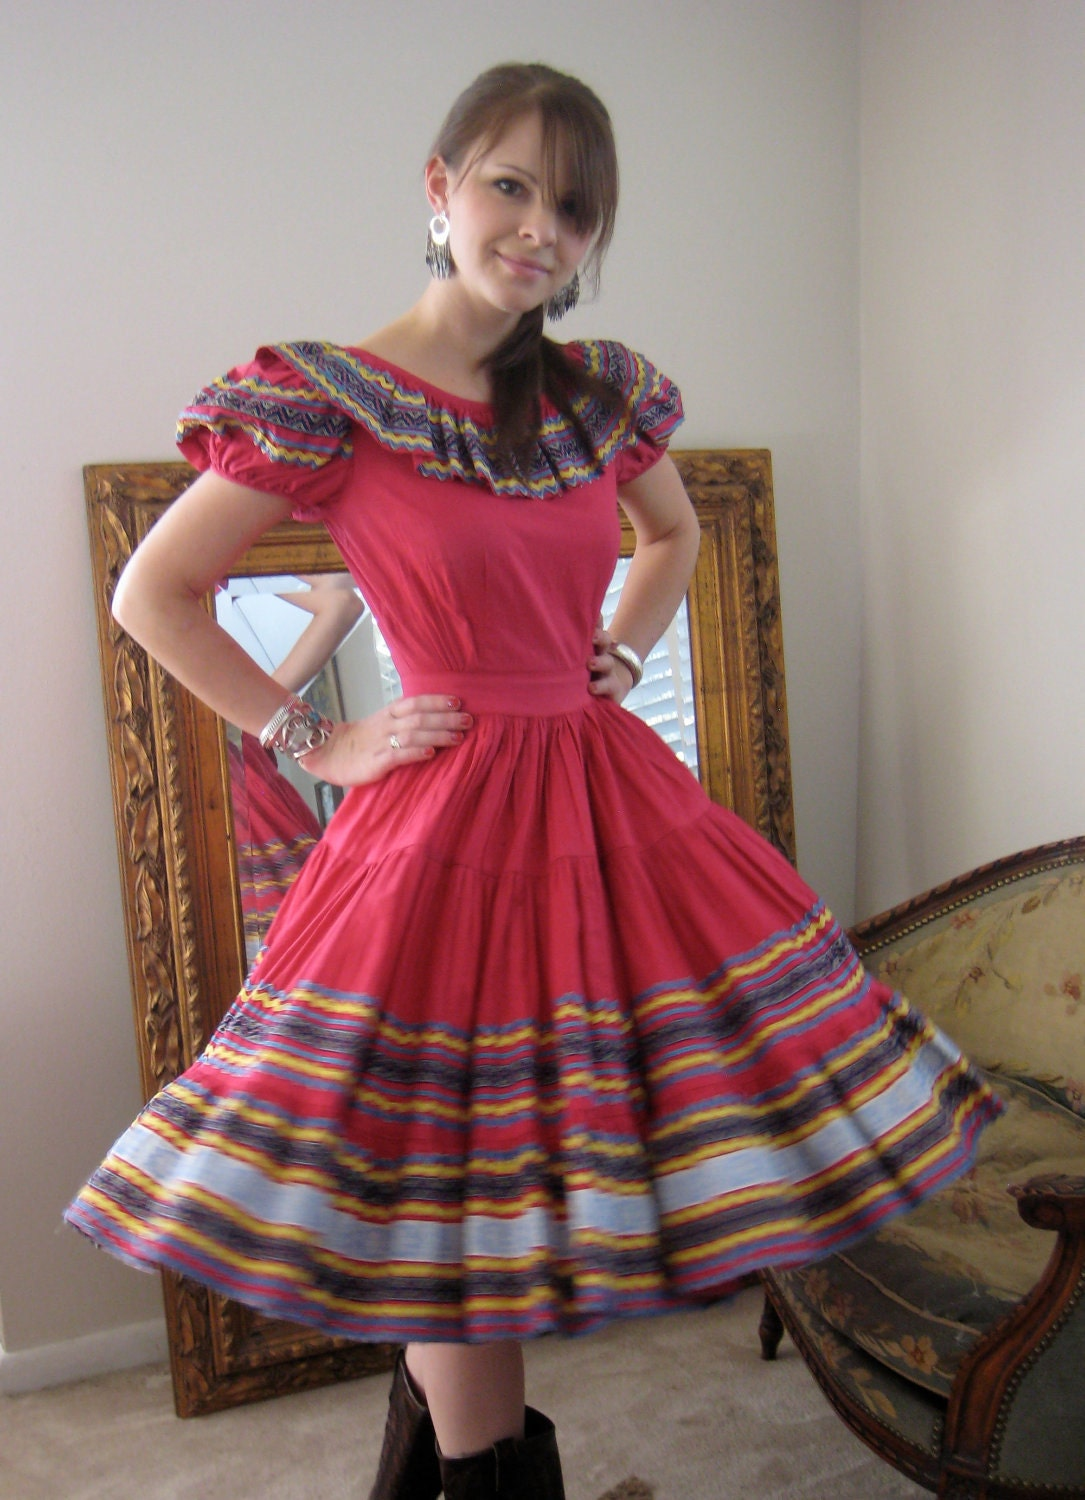 Creative Thoughts On The Fabric The Mexican Dress Midnight Knit Fabric  The Fabric Is Perfect For A Fun Dress At This Tween Stage  Vibrant Yet Playful For The Womens Knot Shirt, I Used A Combination Of The Larchmont Tee Sewing Pattern By Sew